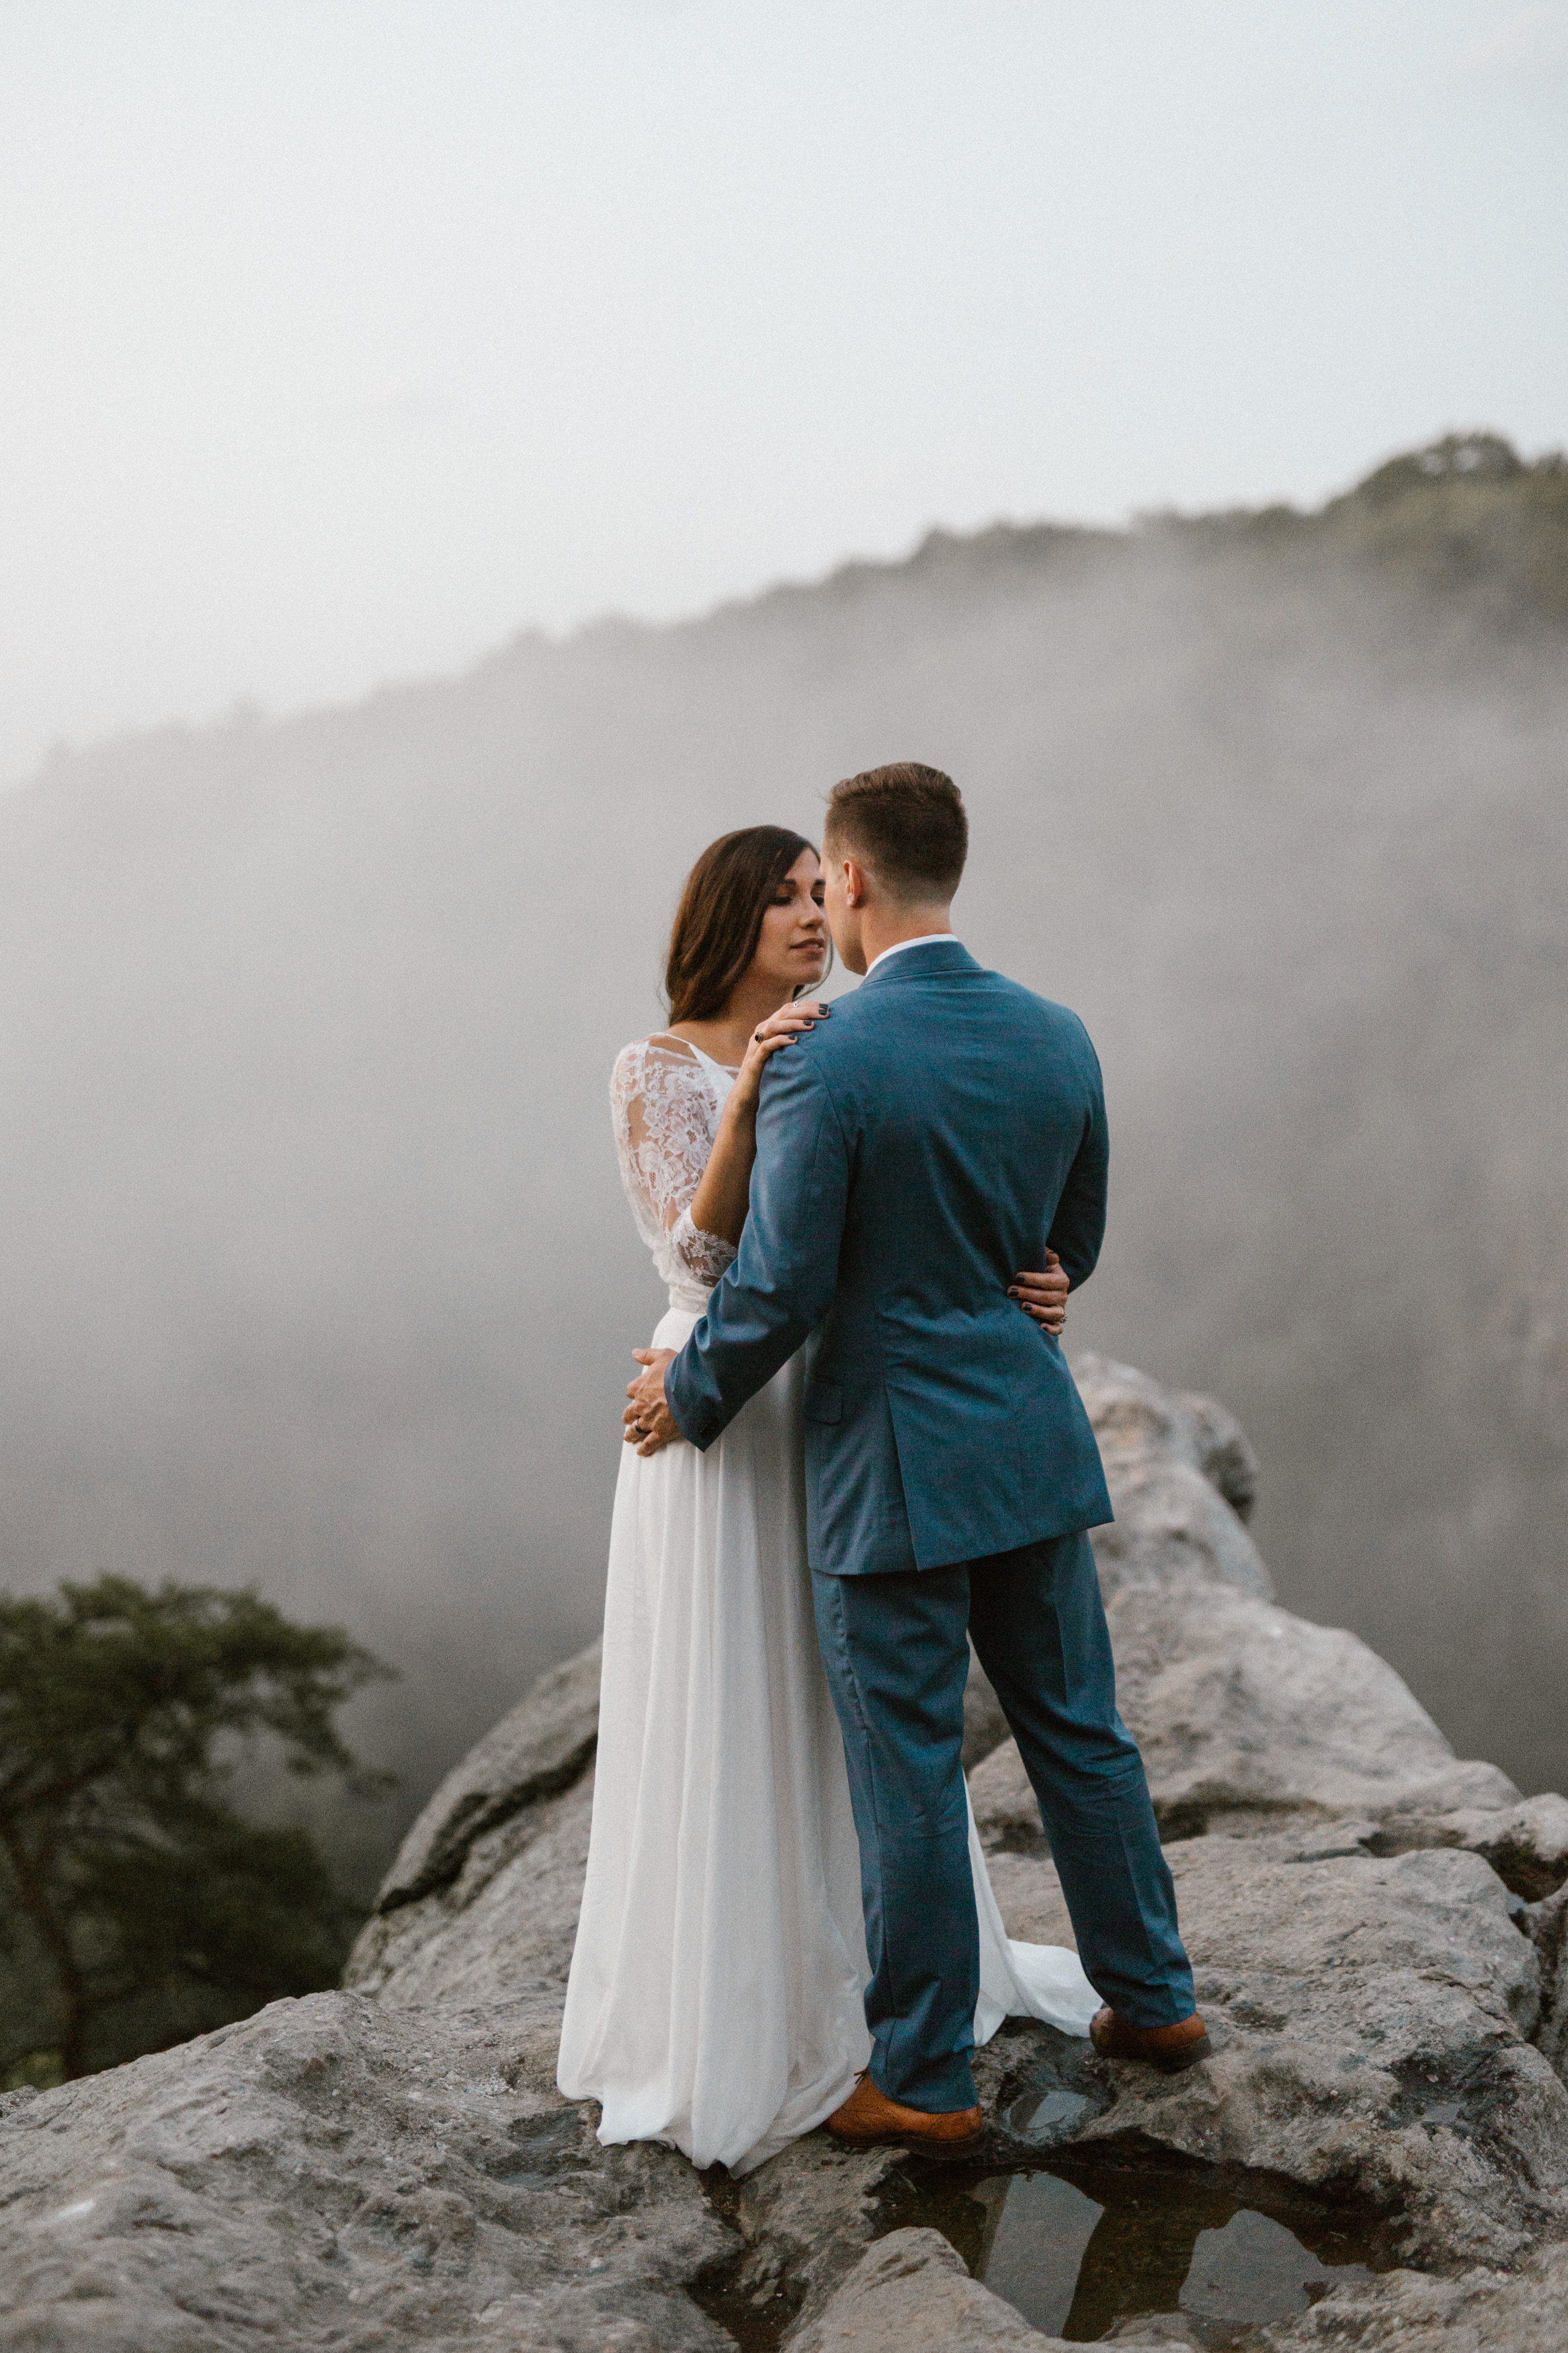 Foggy Mountaintop Elopement Inspiration with Macrame Backdrop Featured on Ruffled Blog